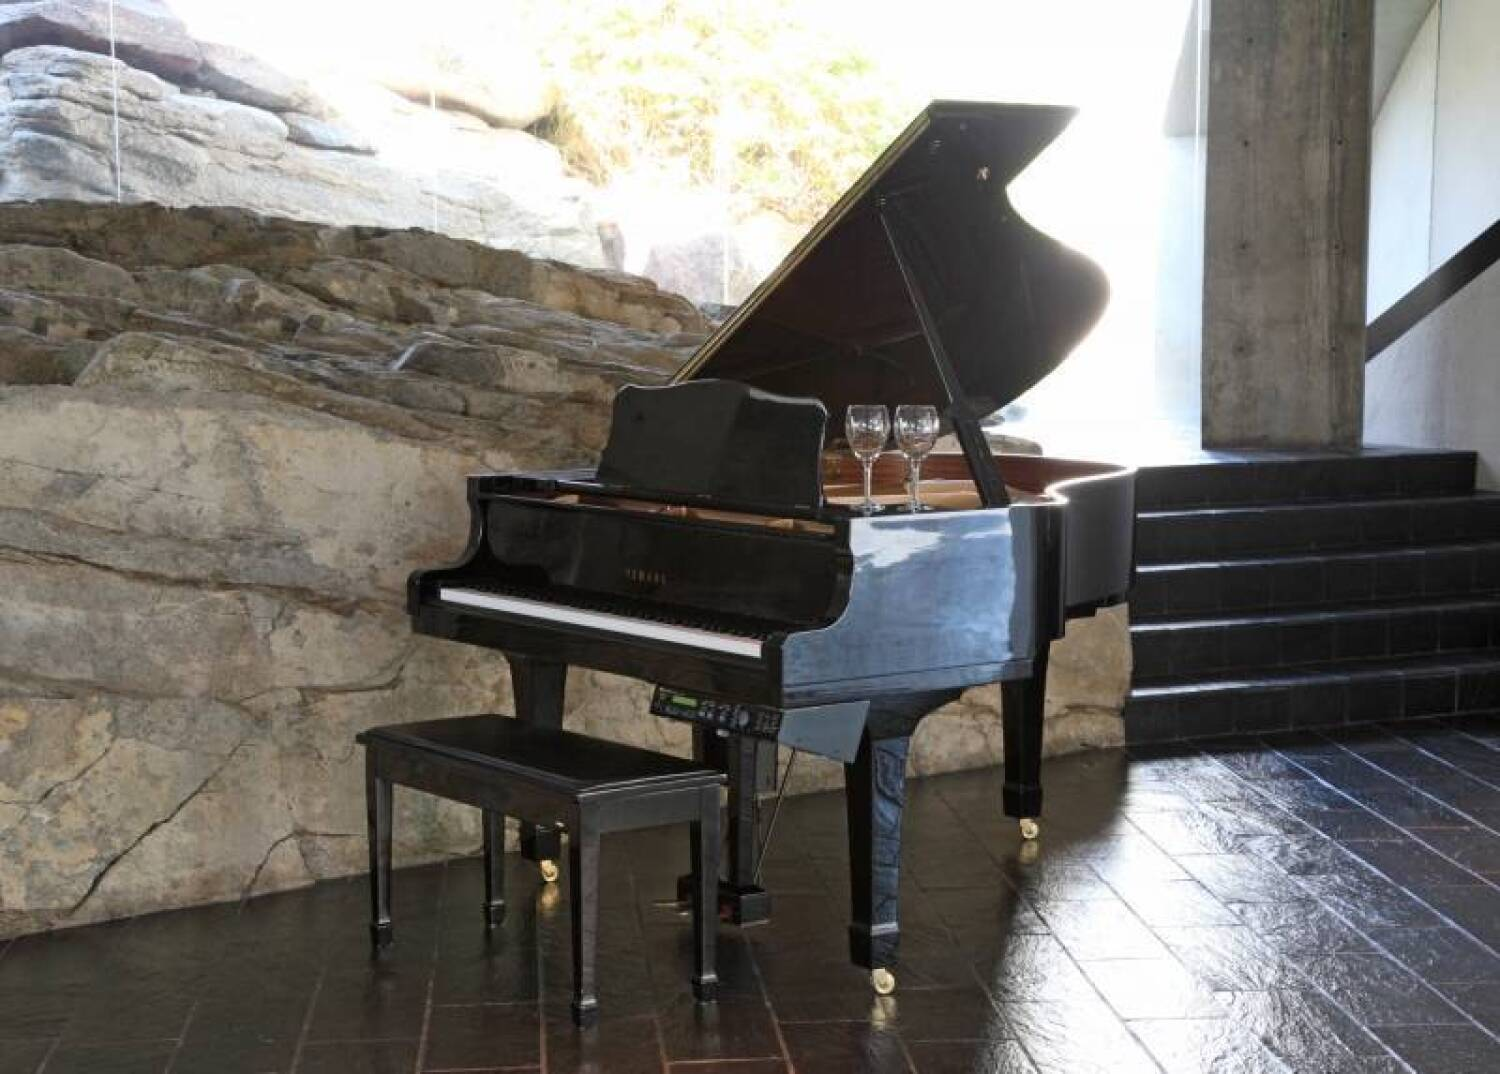 Yamaha Disklavier Grand Piano Current Price 6500